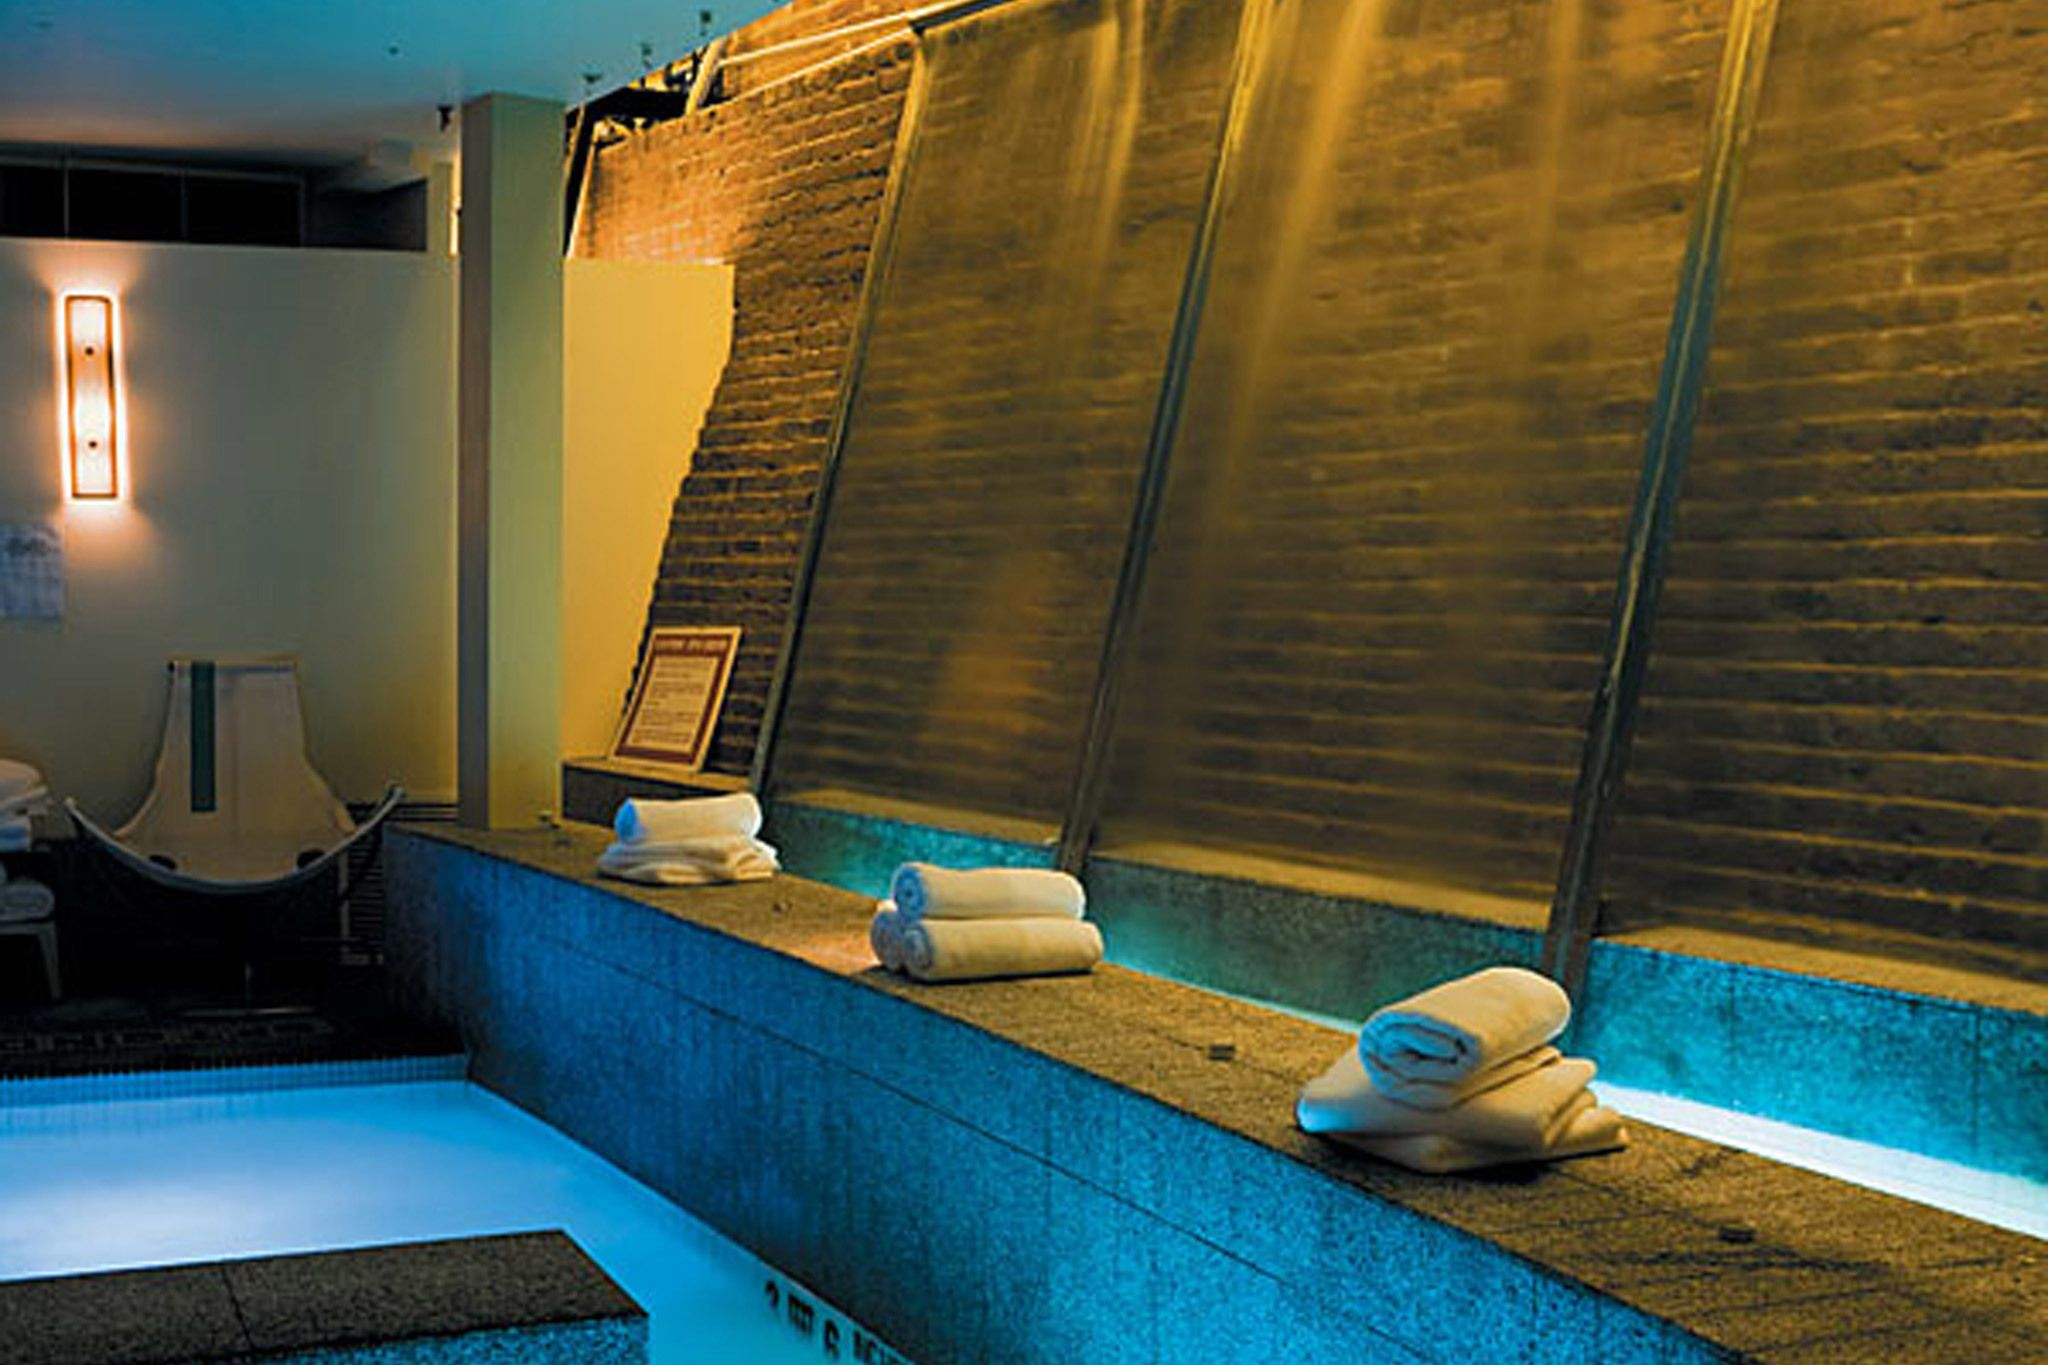 10 Best NYC Spas - Top Spa Treatments in New York City